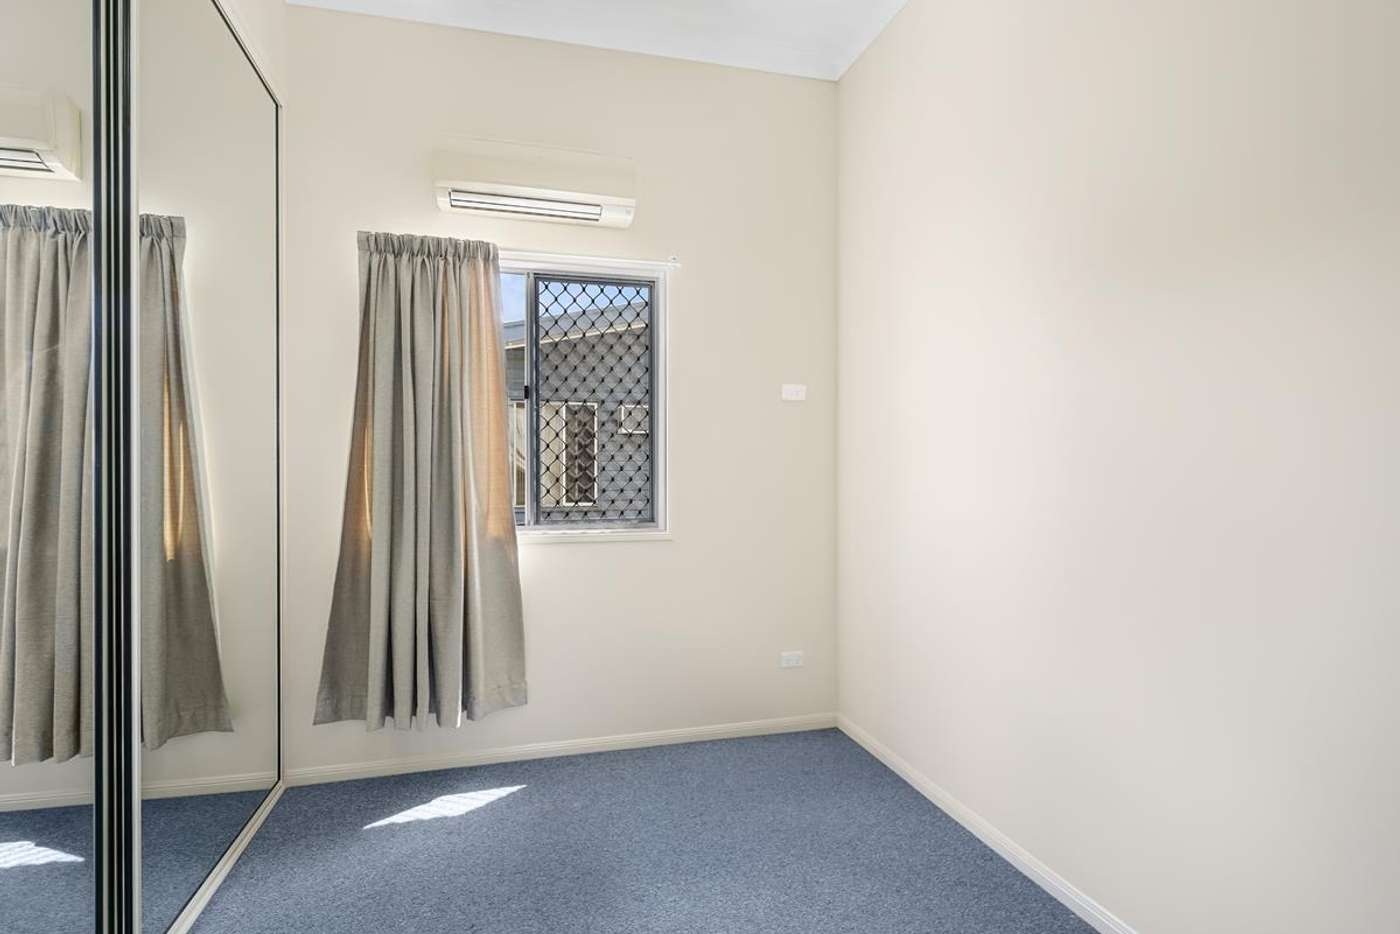 Sixth view of Homely house listing, 57 Nelson Street, Bungalow QLD 4870